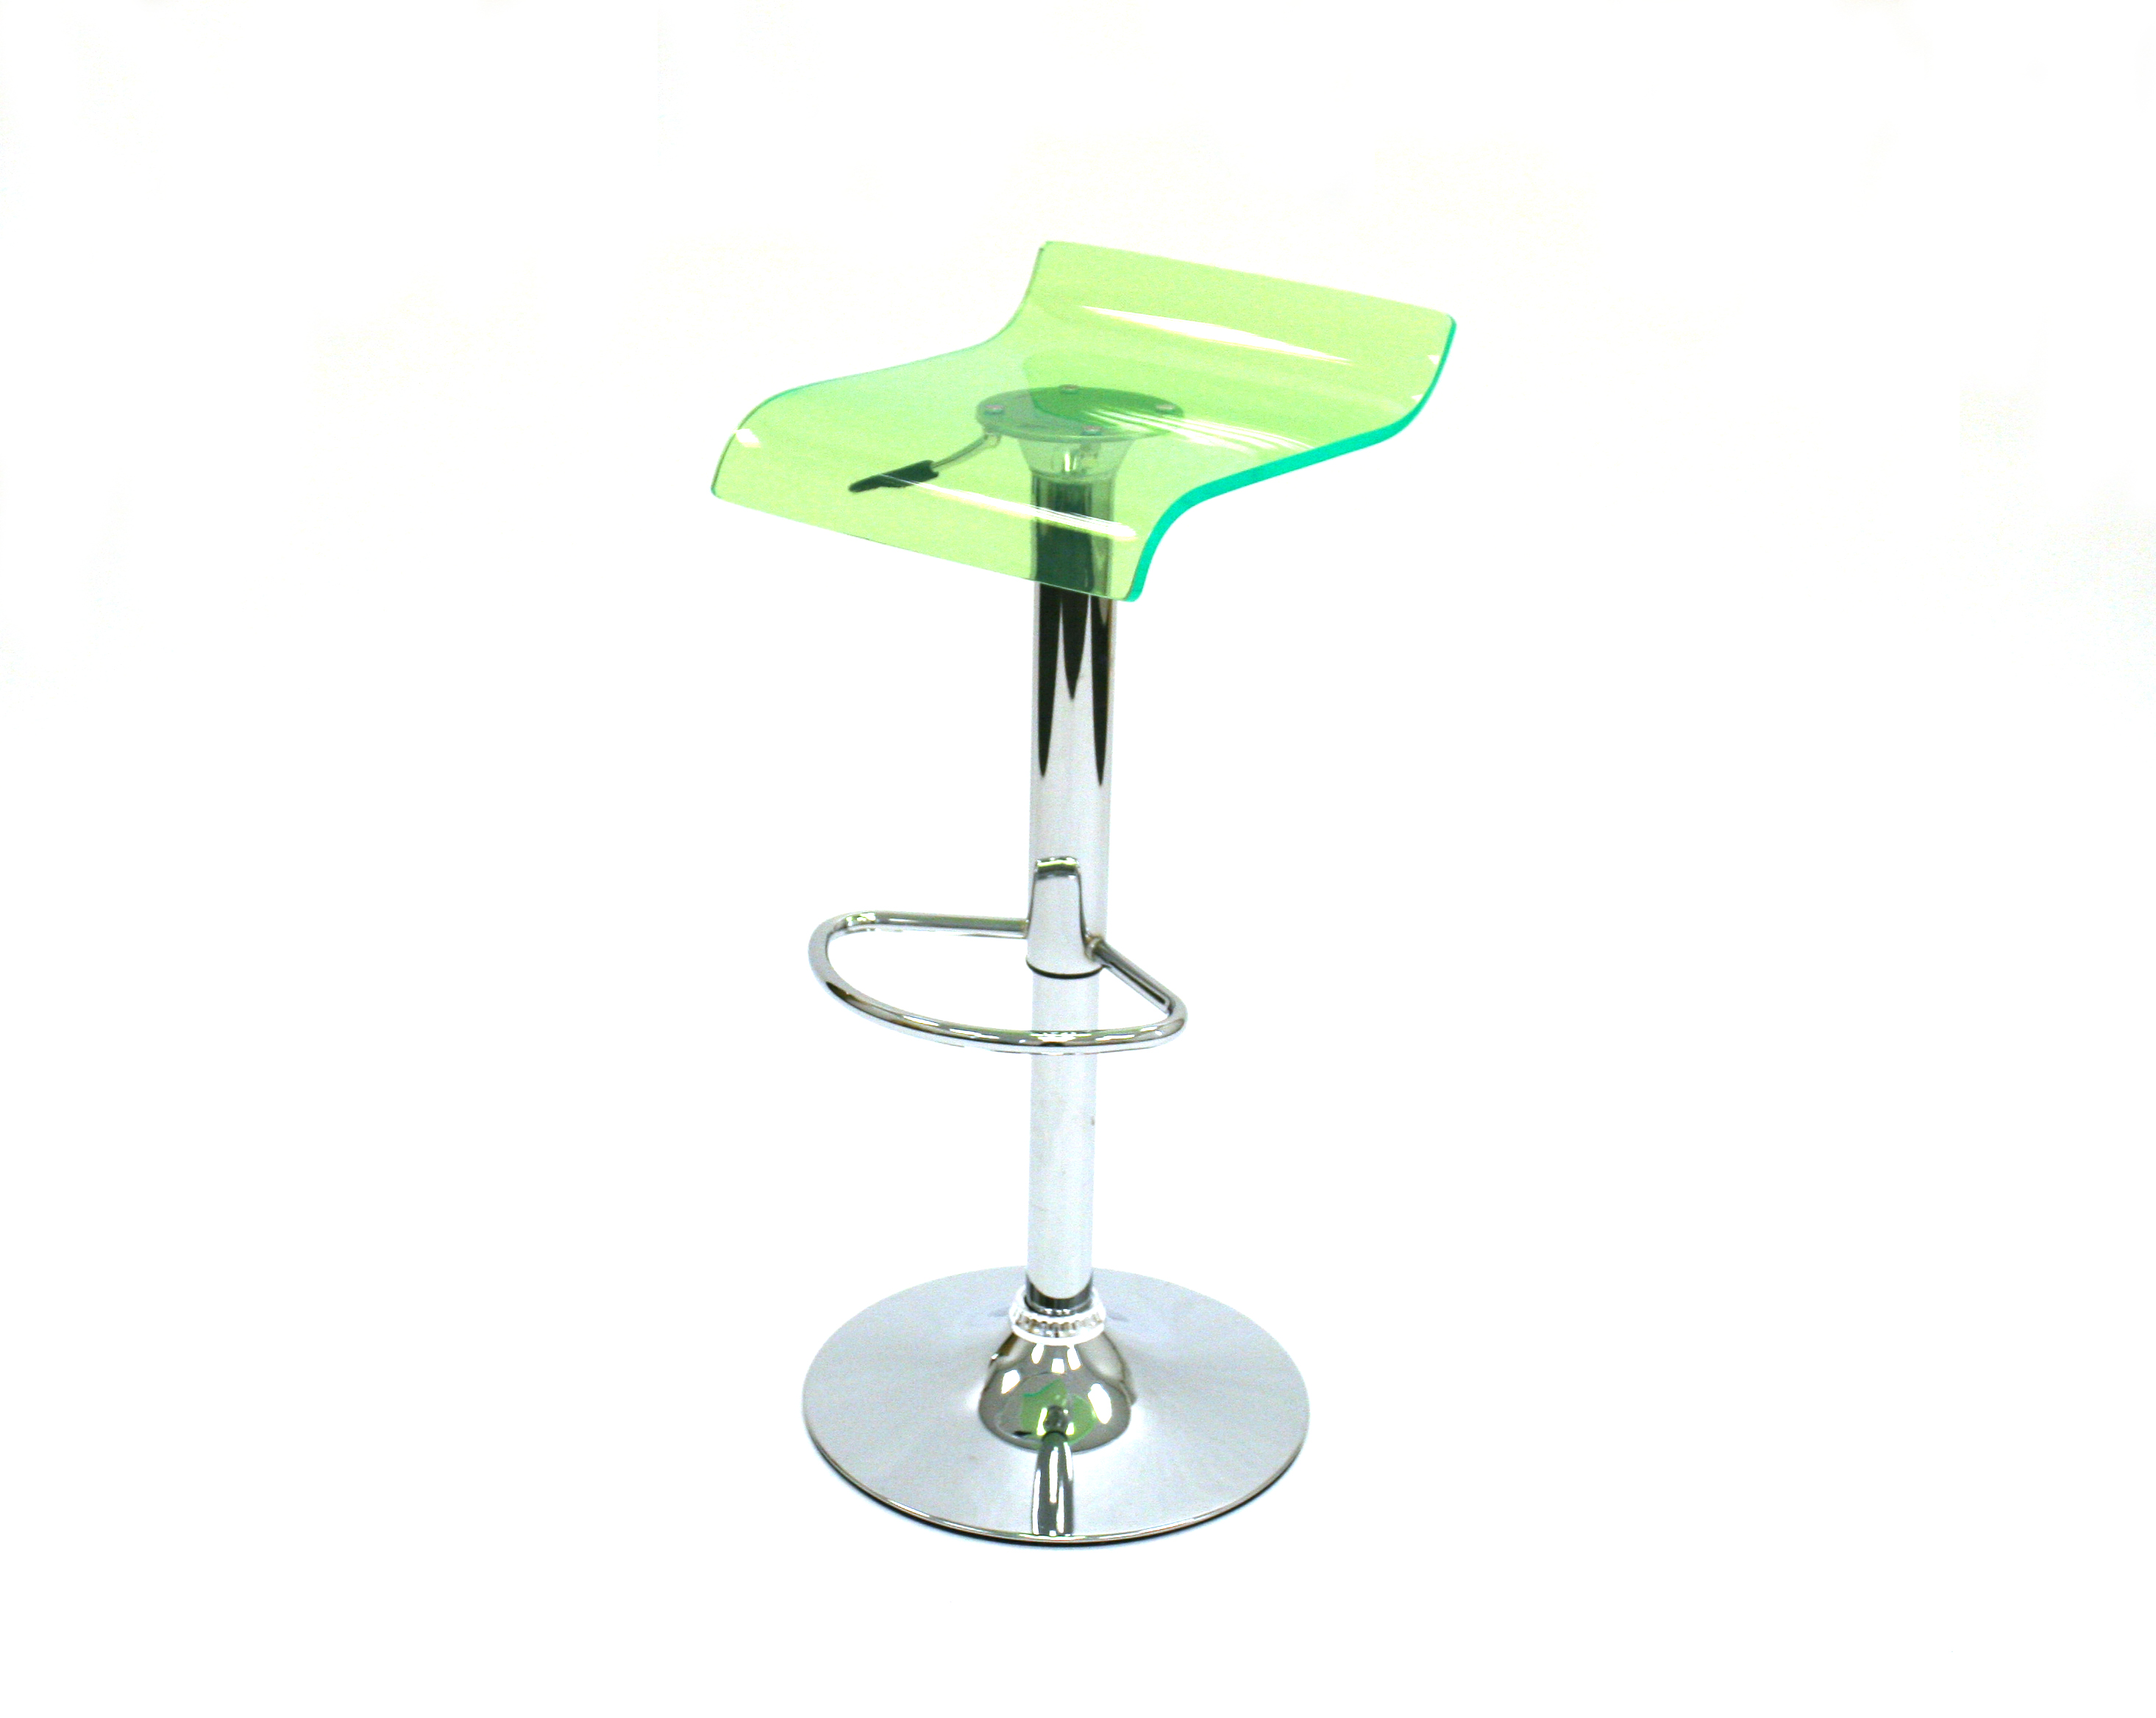 Green Acrylic Bar Stools for Hire - Event, Exhibition Stools - BE Event Hire